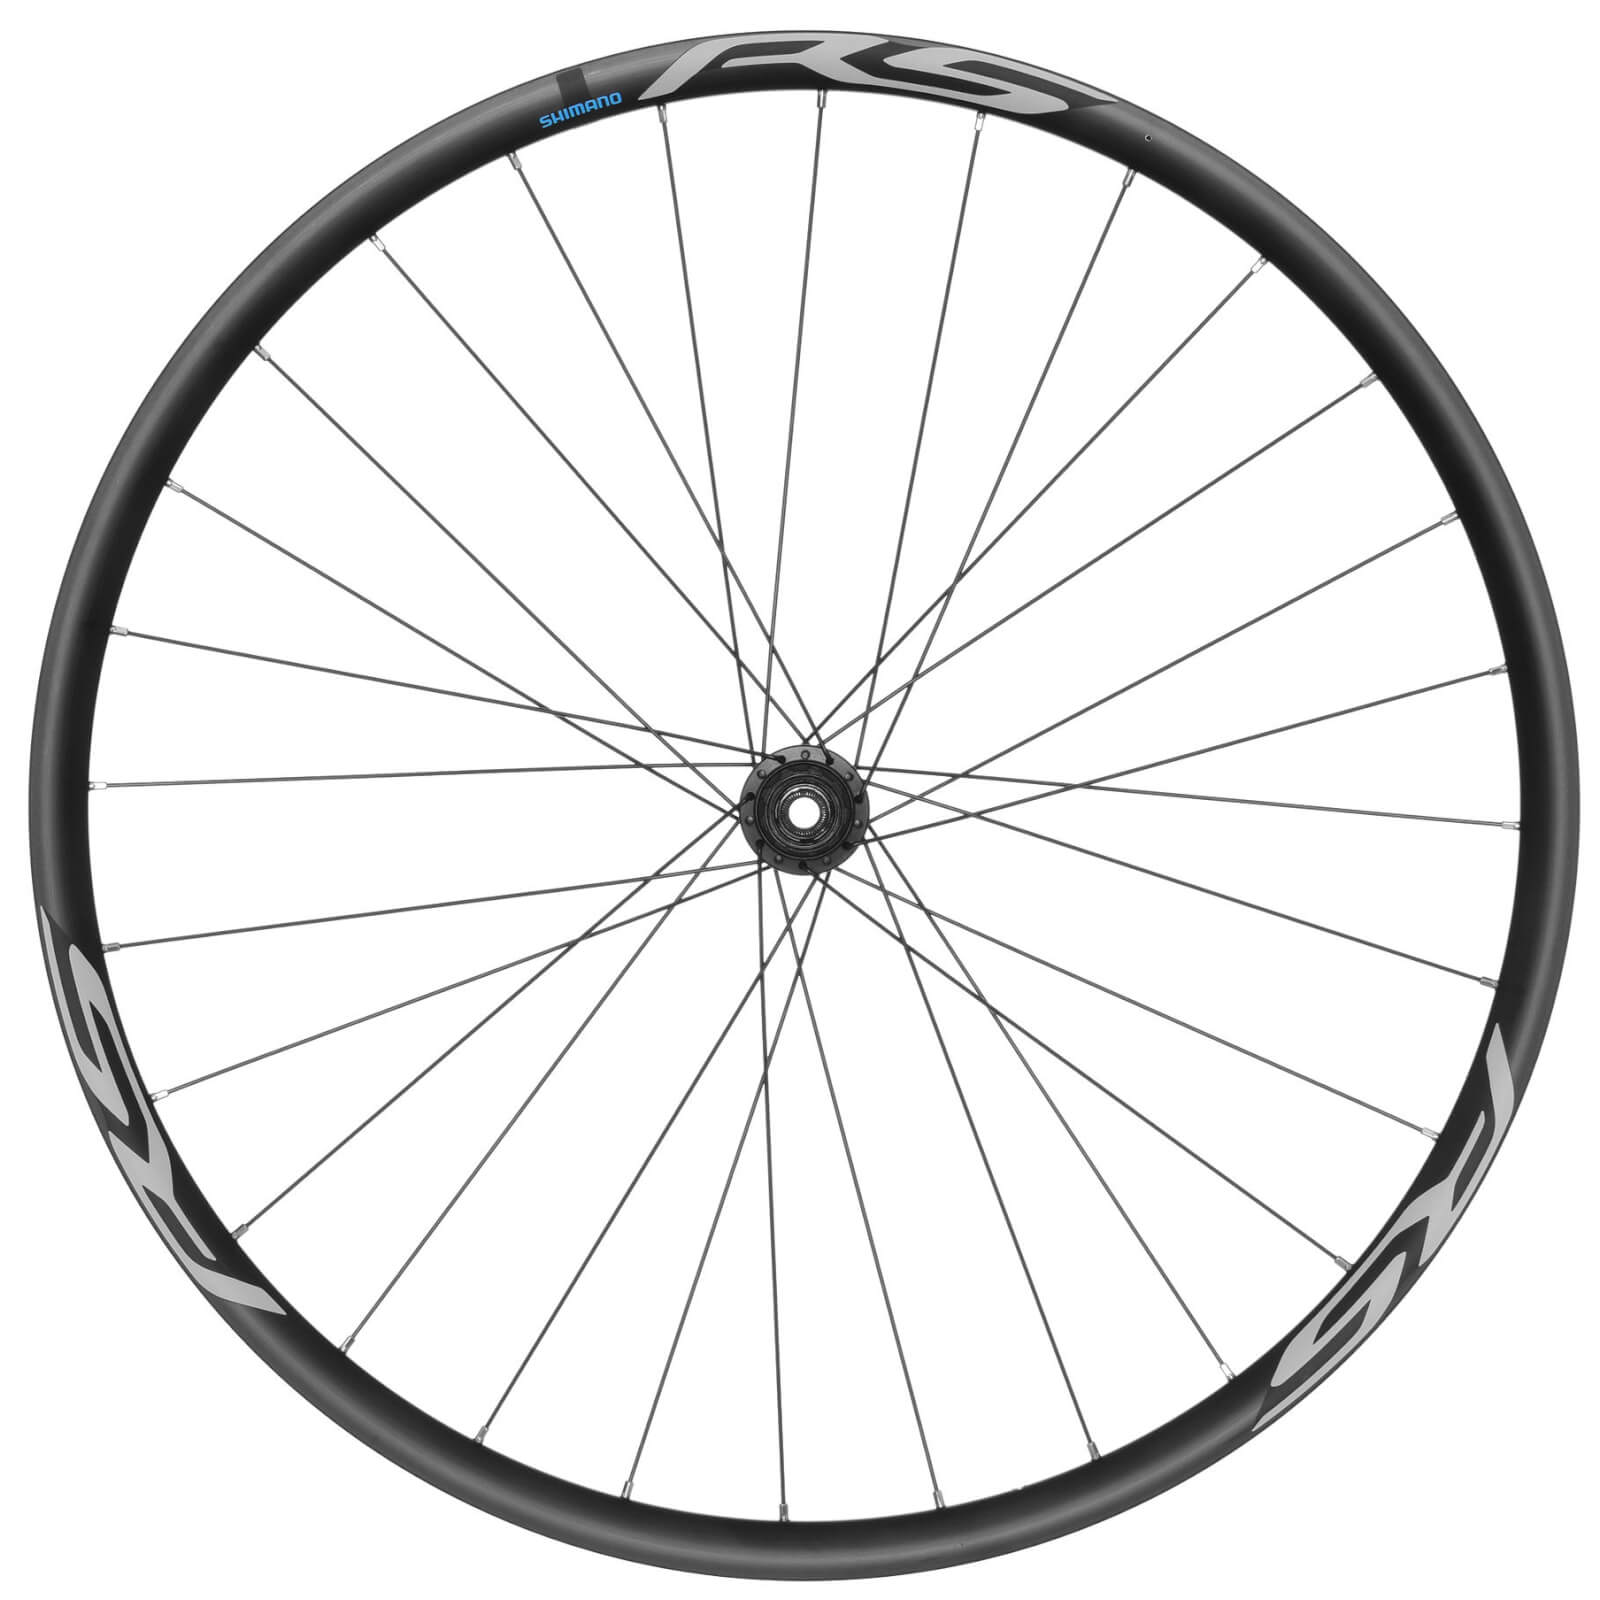 Shimano WH-RS170 Clincher for Centre-Lock Disc Rotor 9/10/11 Speed - 142mm x 12mm Axle - Rear Wheel